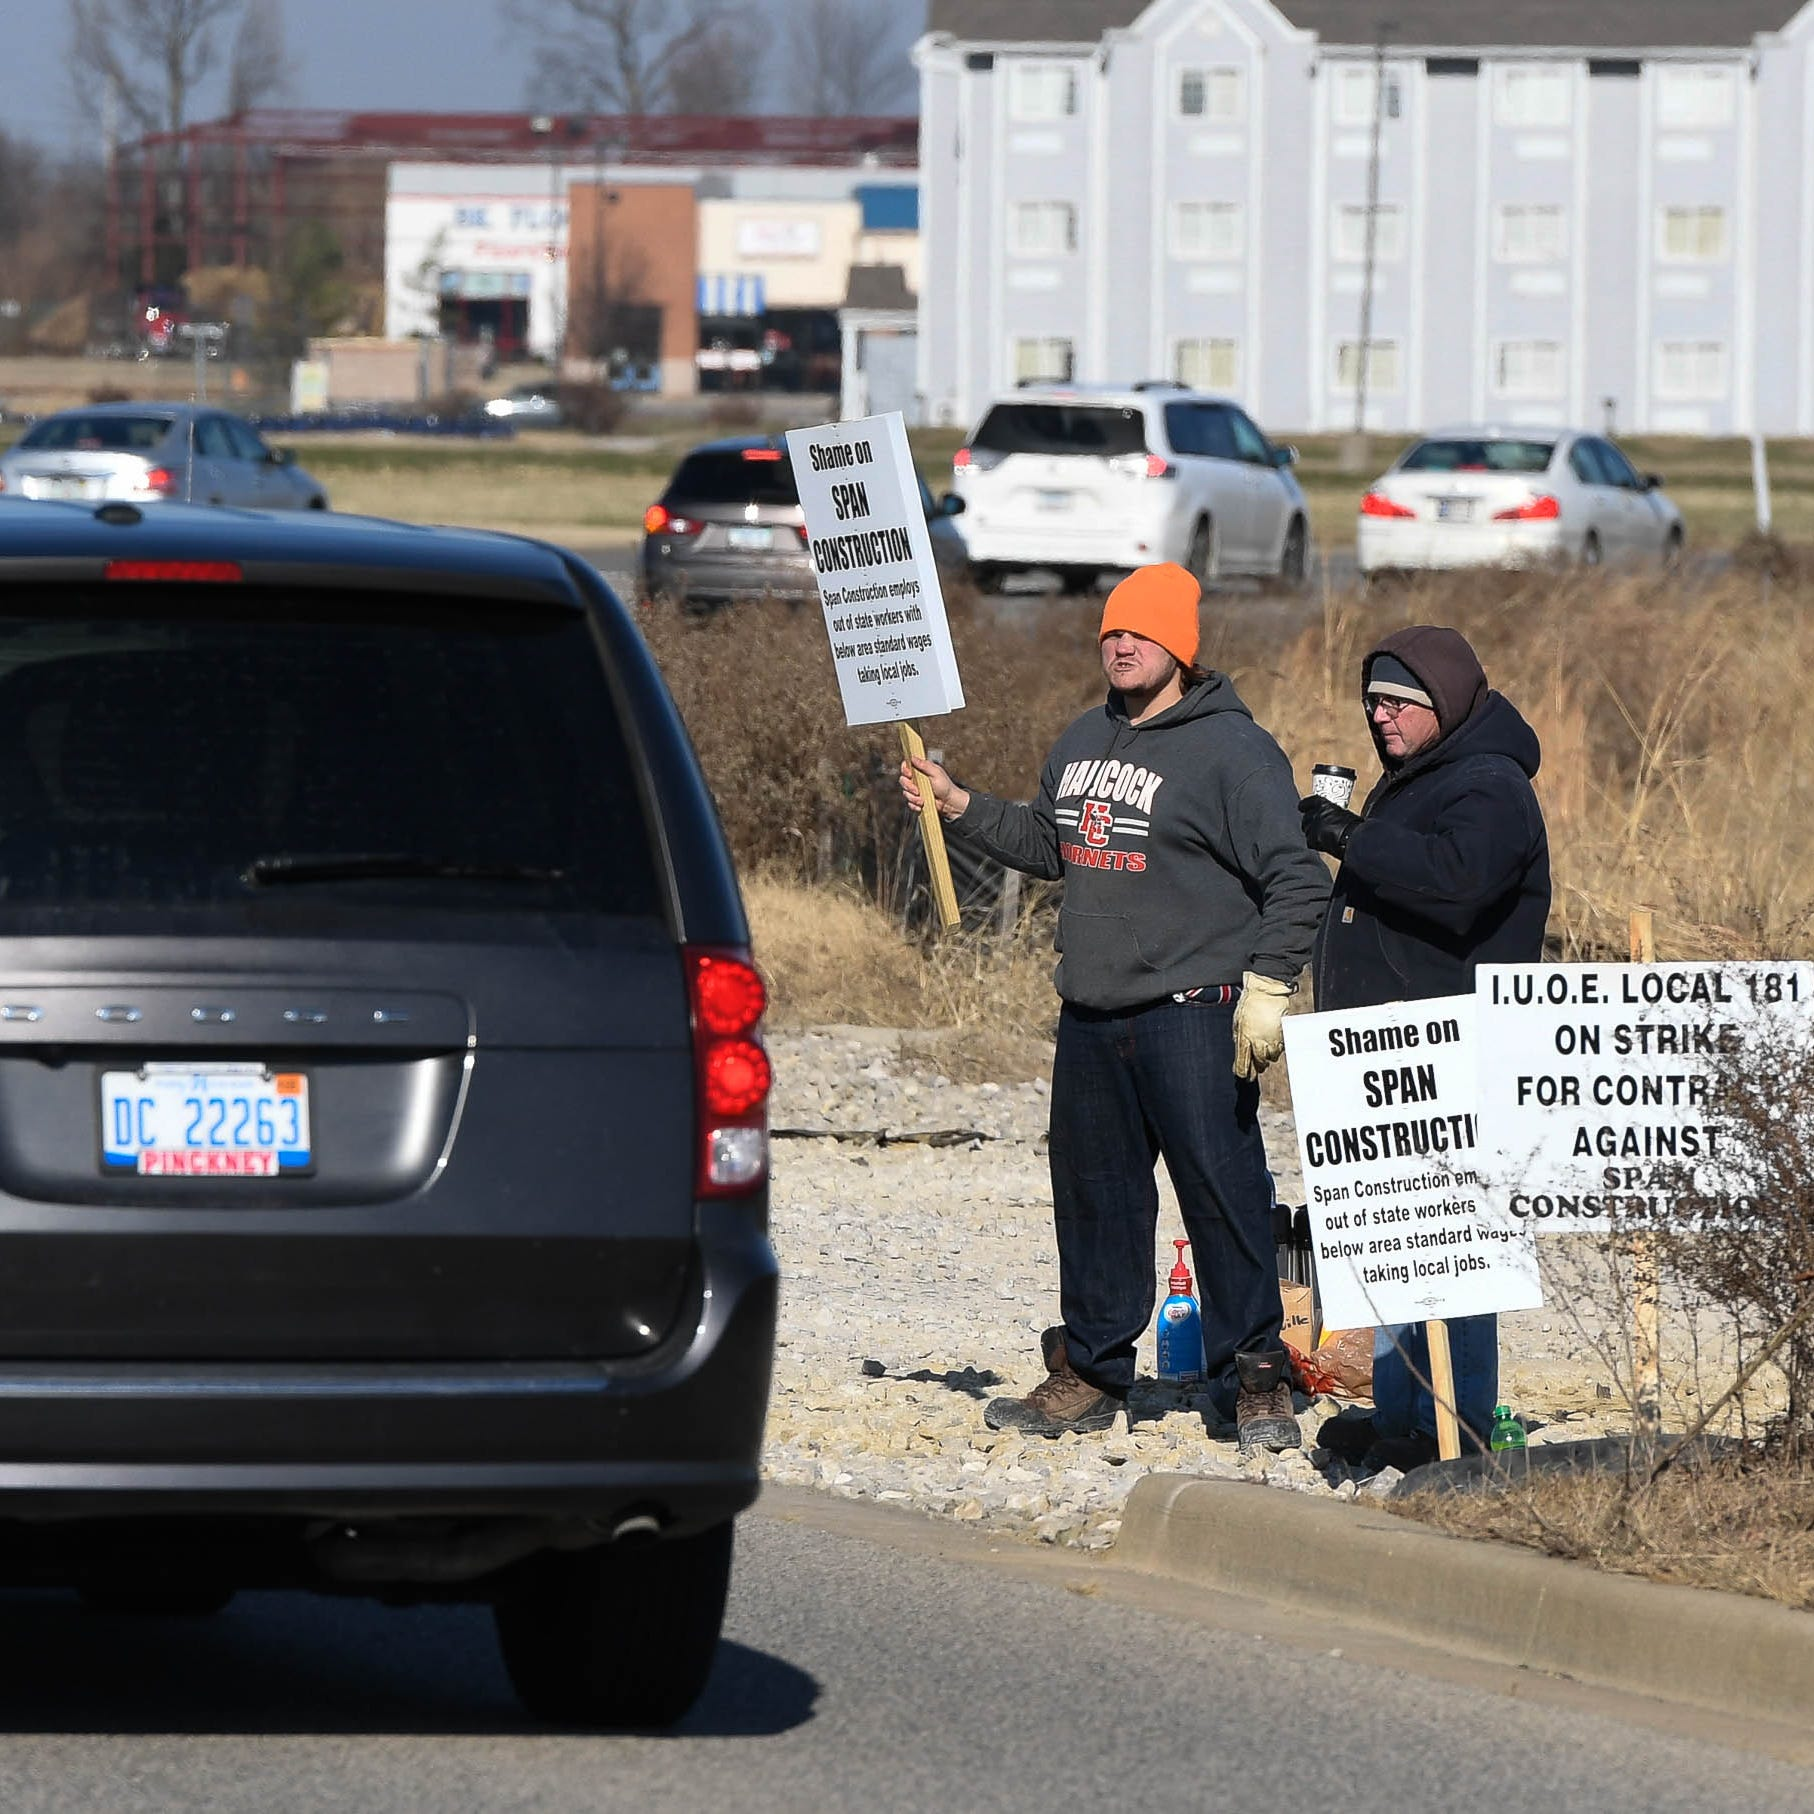 Local unions picket Costco Wholesale construction site in Evansville